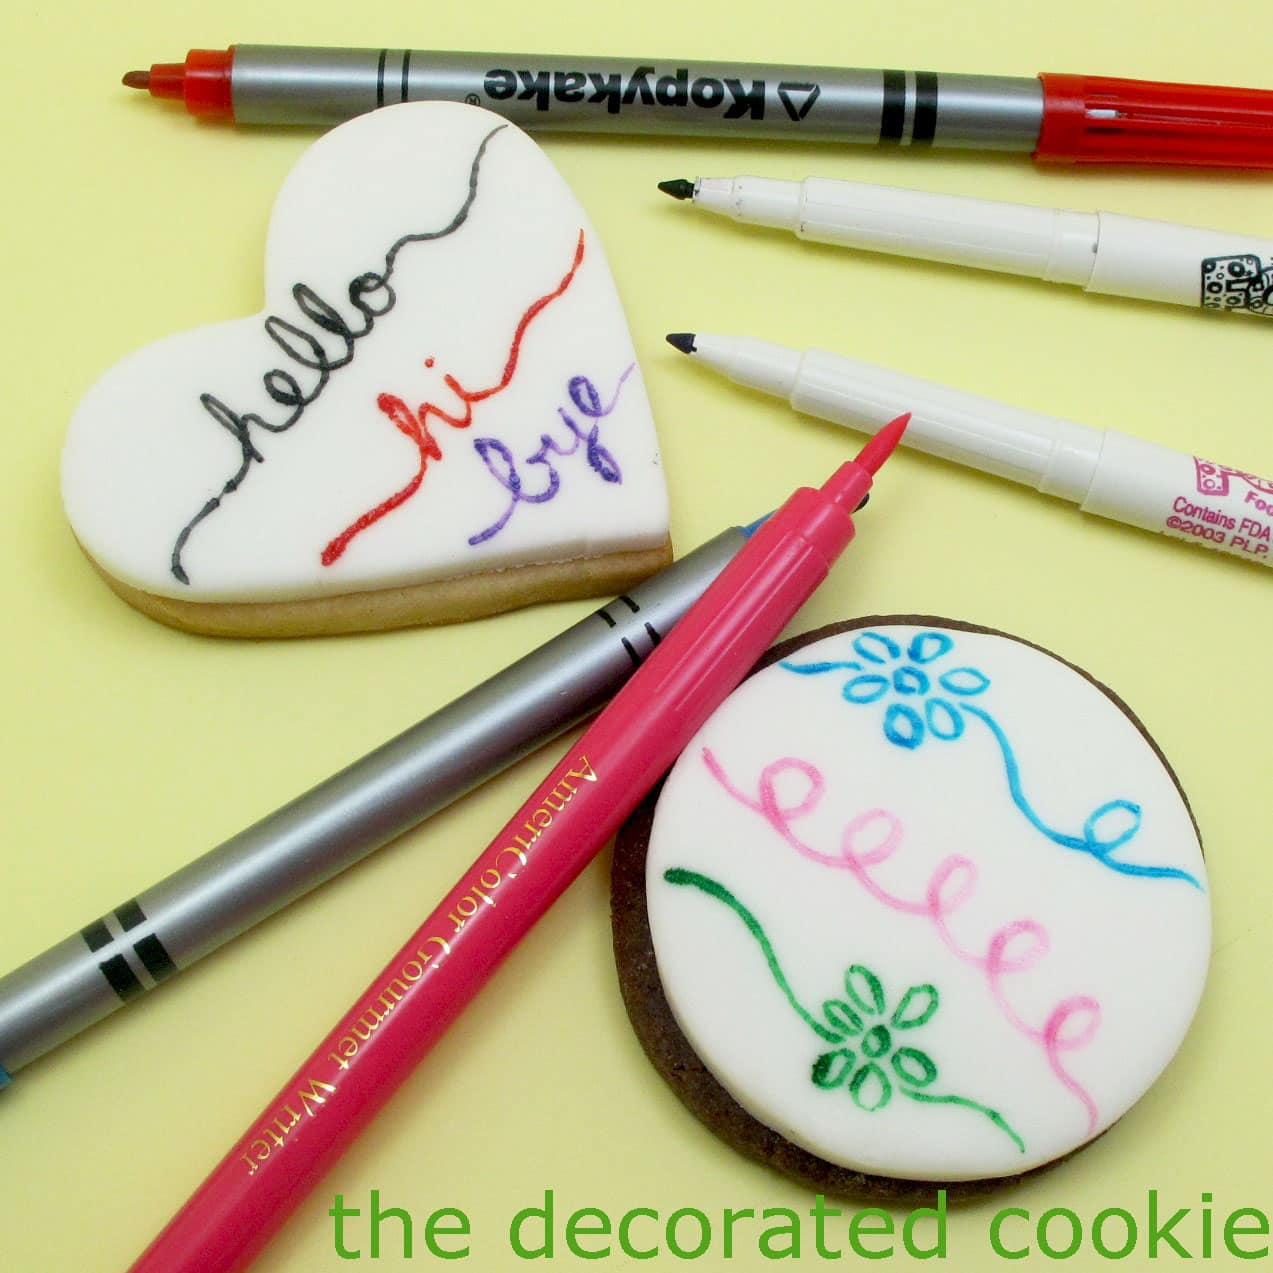 How To Use Food Coloring Pens To Decorate Cookies And Marshmallows